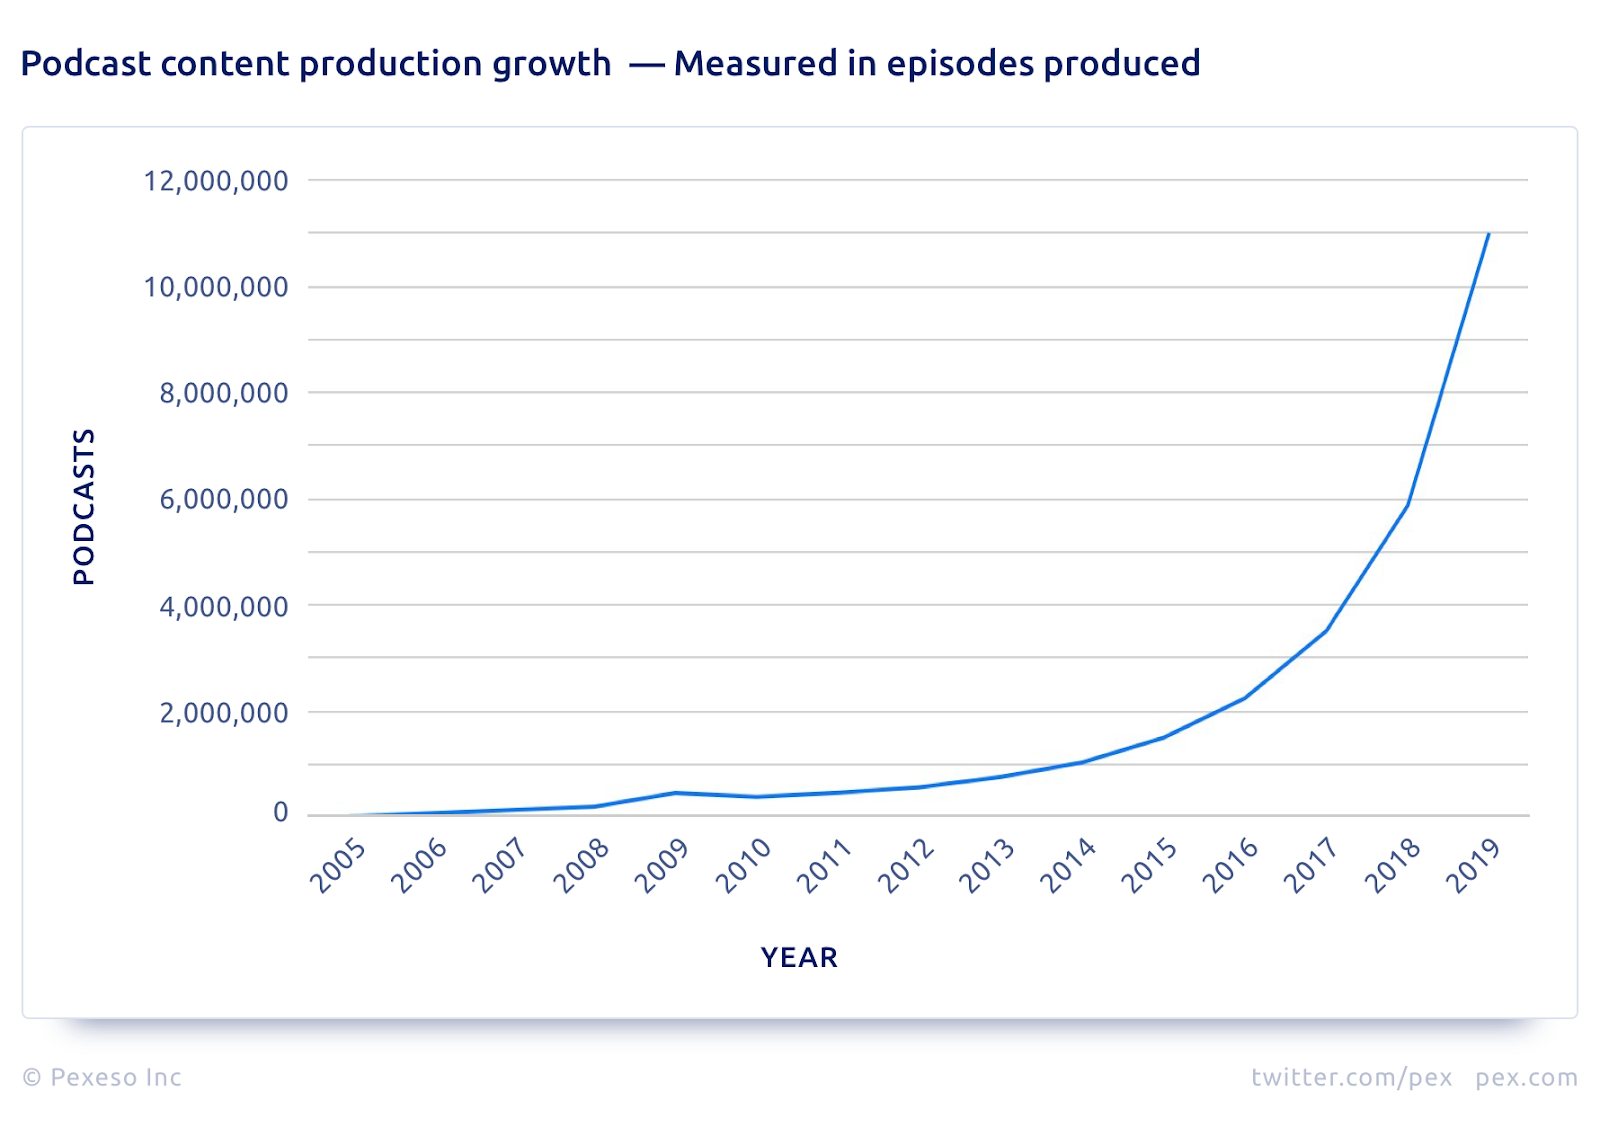 Podcast-Content-Production-Growth-Episodes-Produced